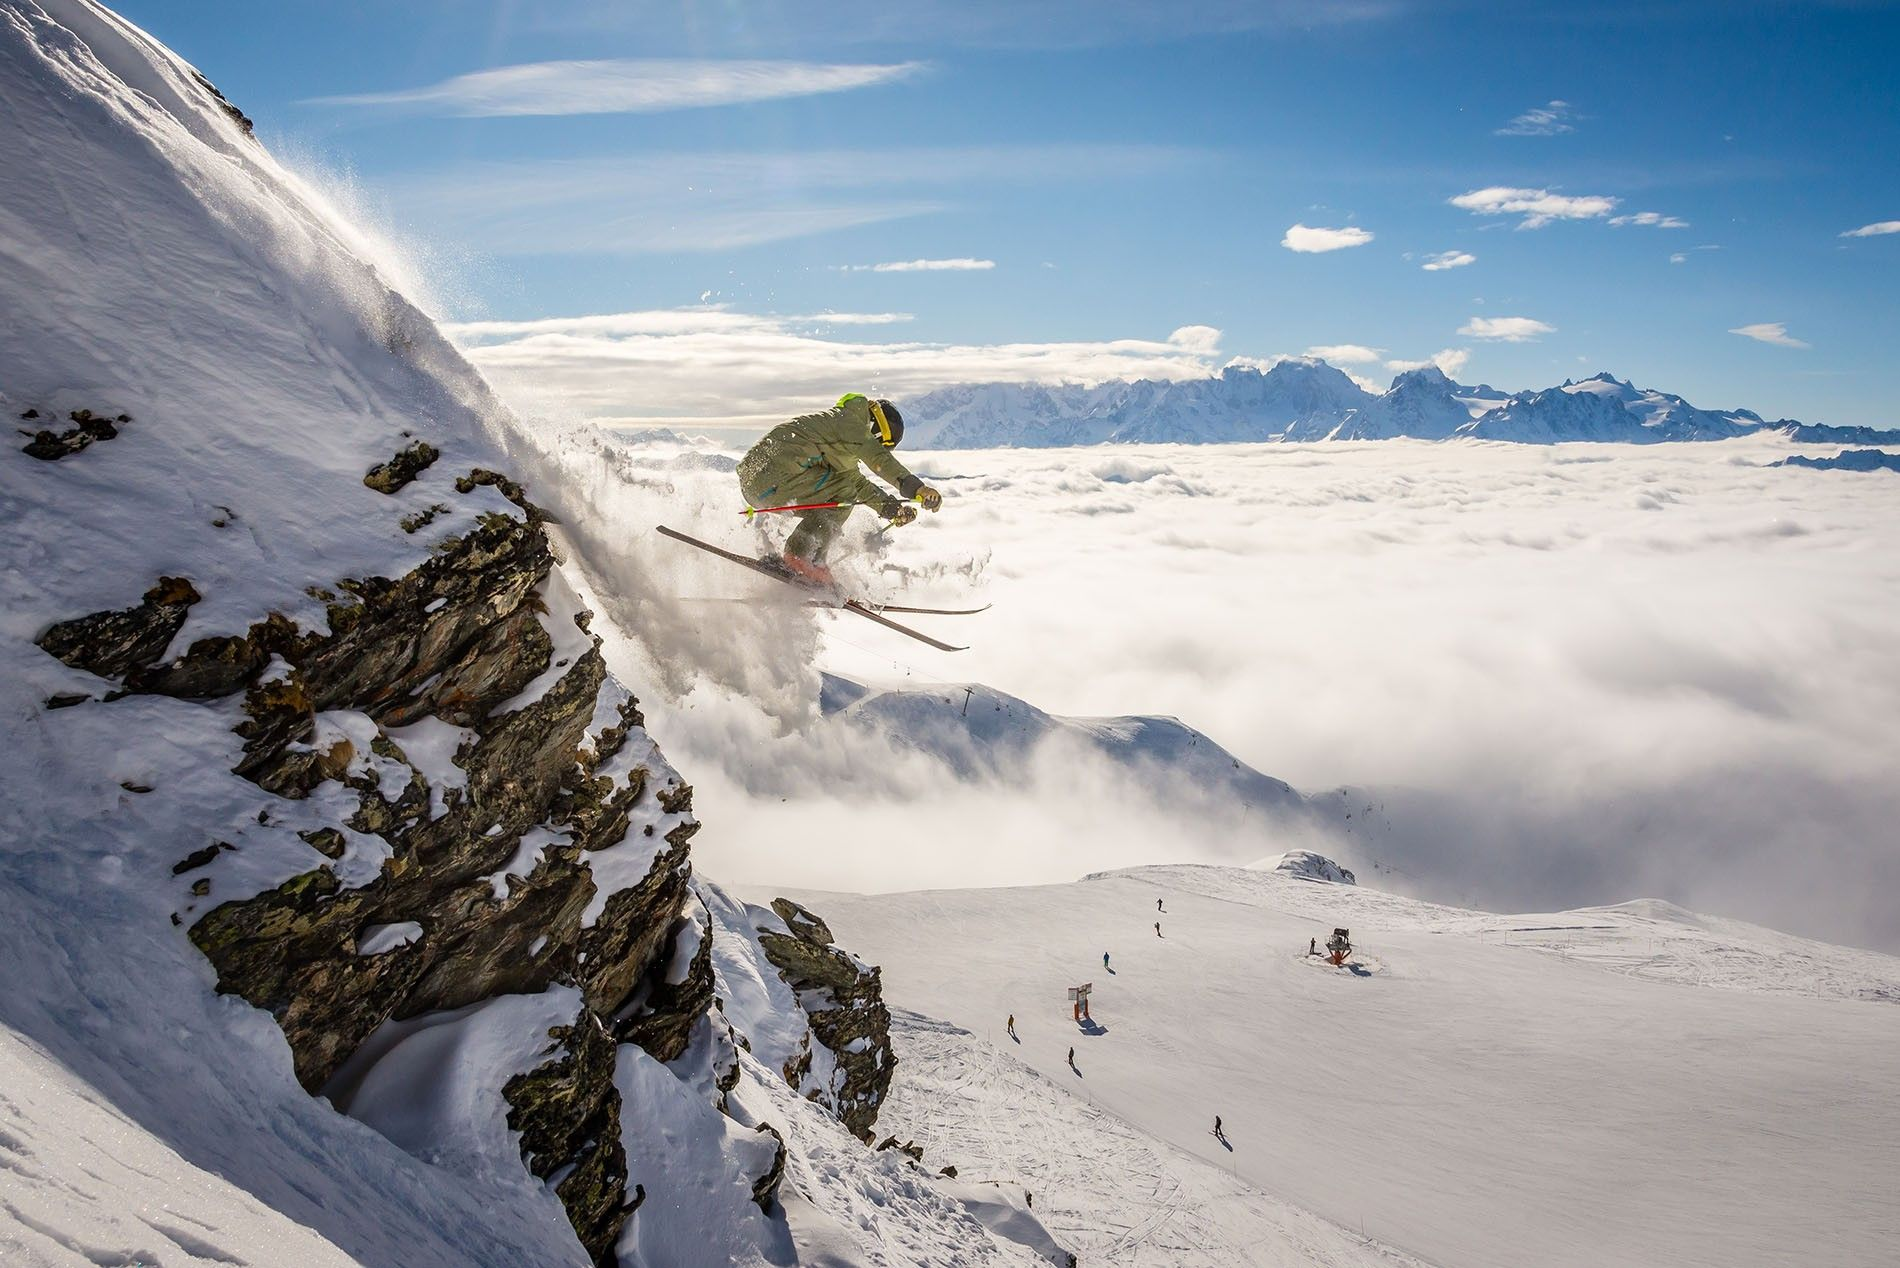 From Chamonix to China, we hear where the pros will be spending their snow season.